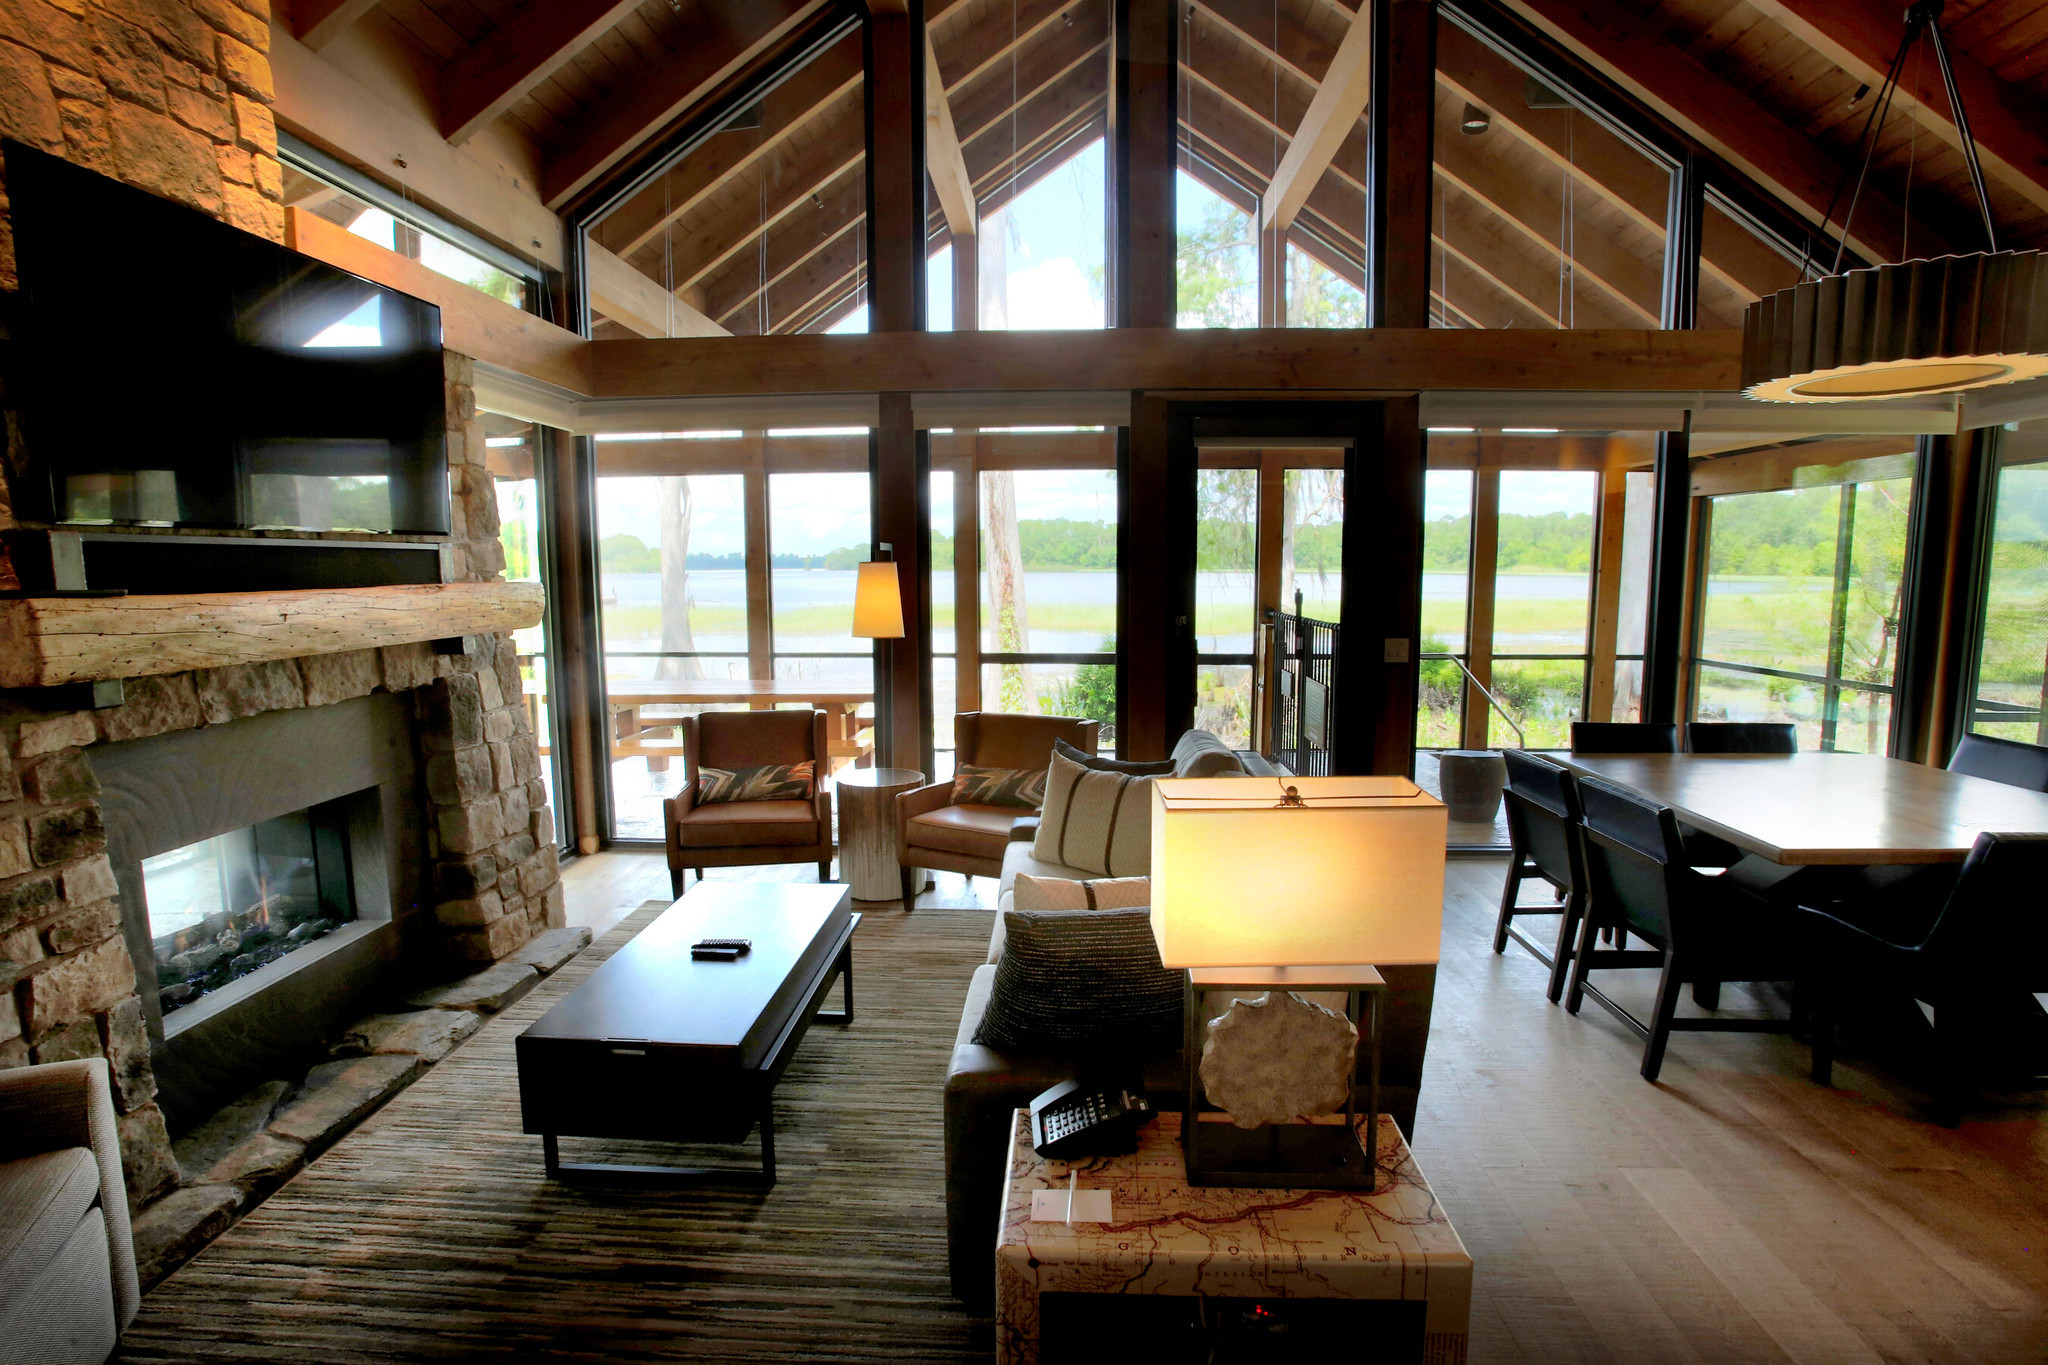 Combined Living Room Dining Room Pictures First Look Copper Creek Villas Cabins At